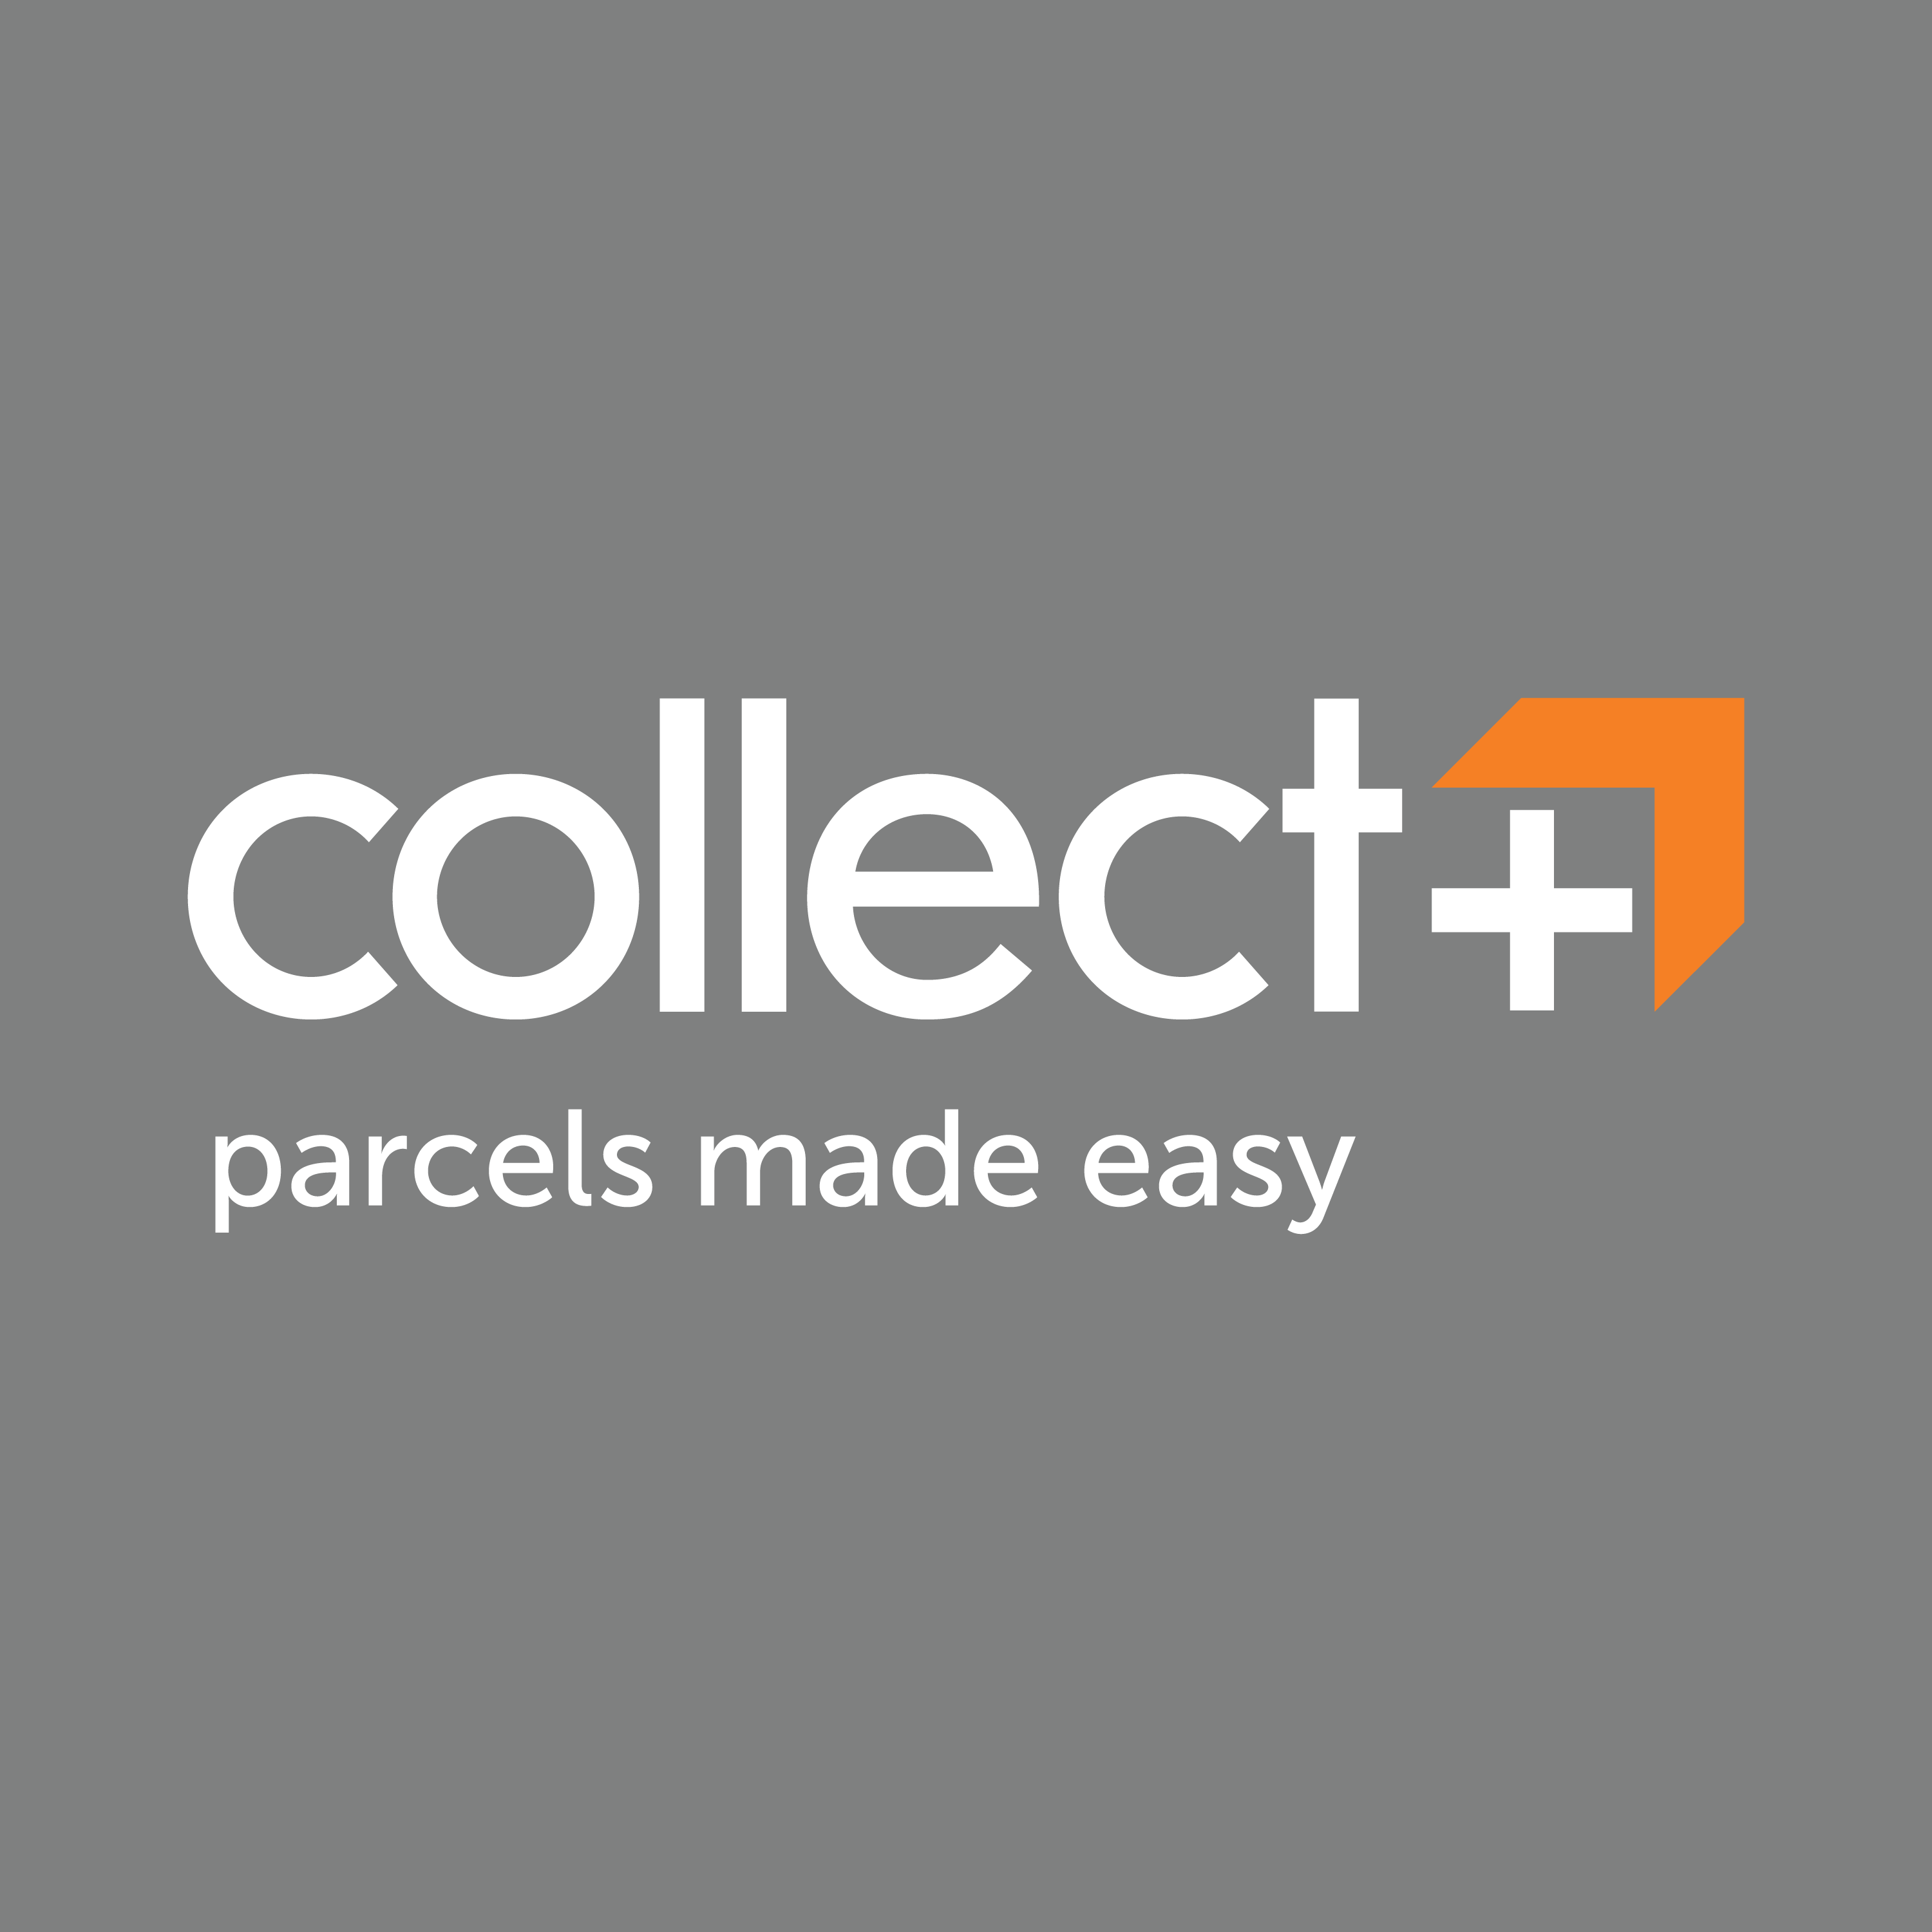 Courier Services | Send Parcels with Free Tracking | CollectPlus